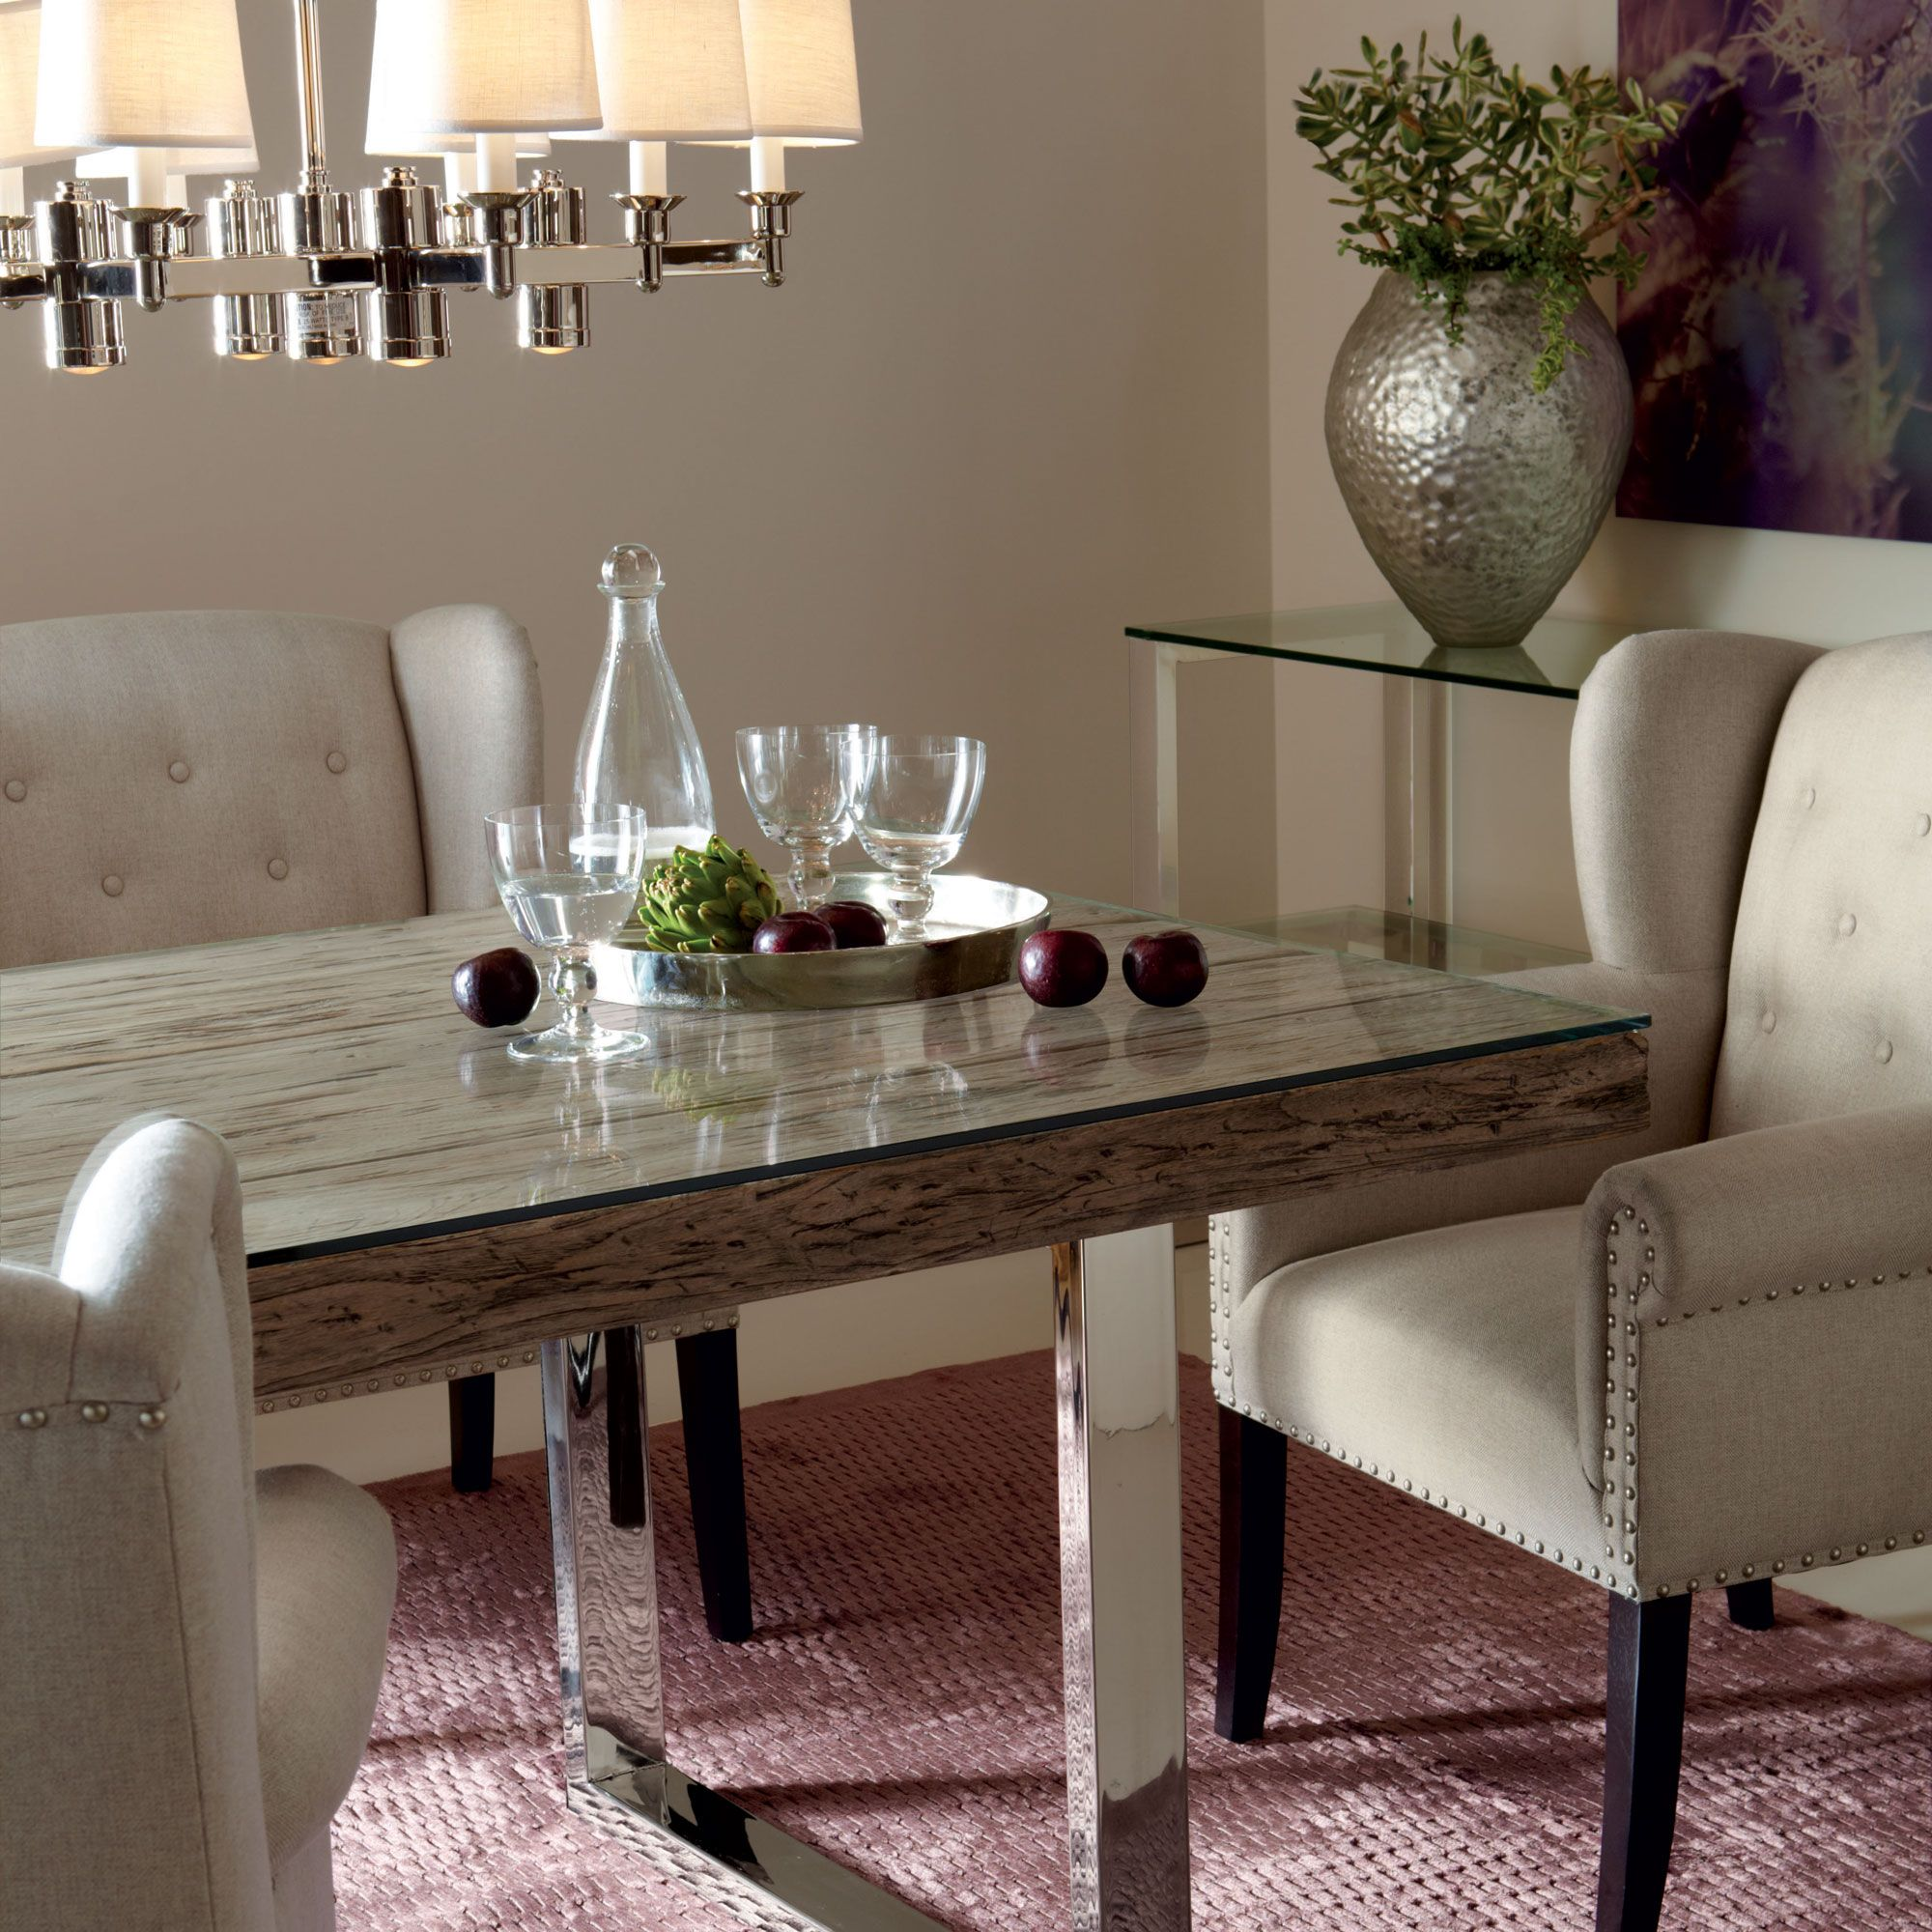 shop for the bernhardt henley dining table at belfort furniture   your washington dc northern virginia maryland and fairfax va furniture  u0026 mattress store bowery henley imperial dining room   bernhardt size  84 u201d w x 40 u201d d      rh   pinterest com